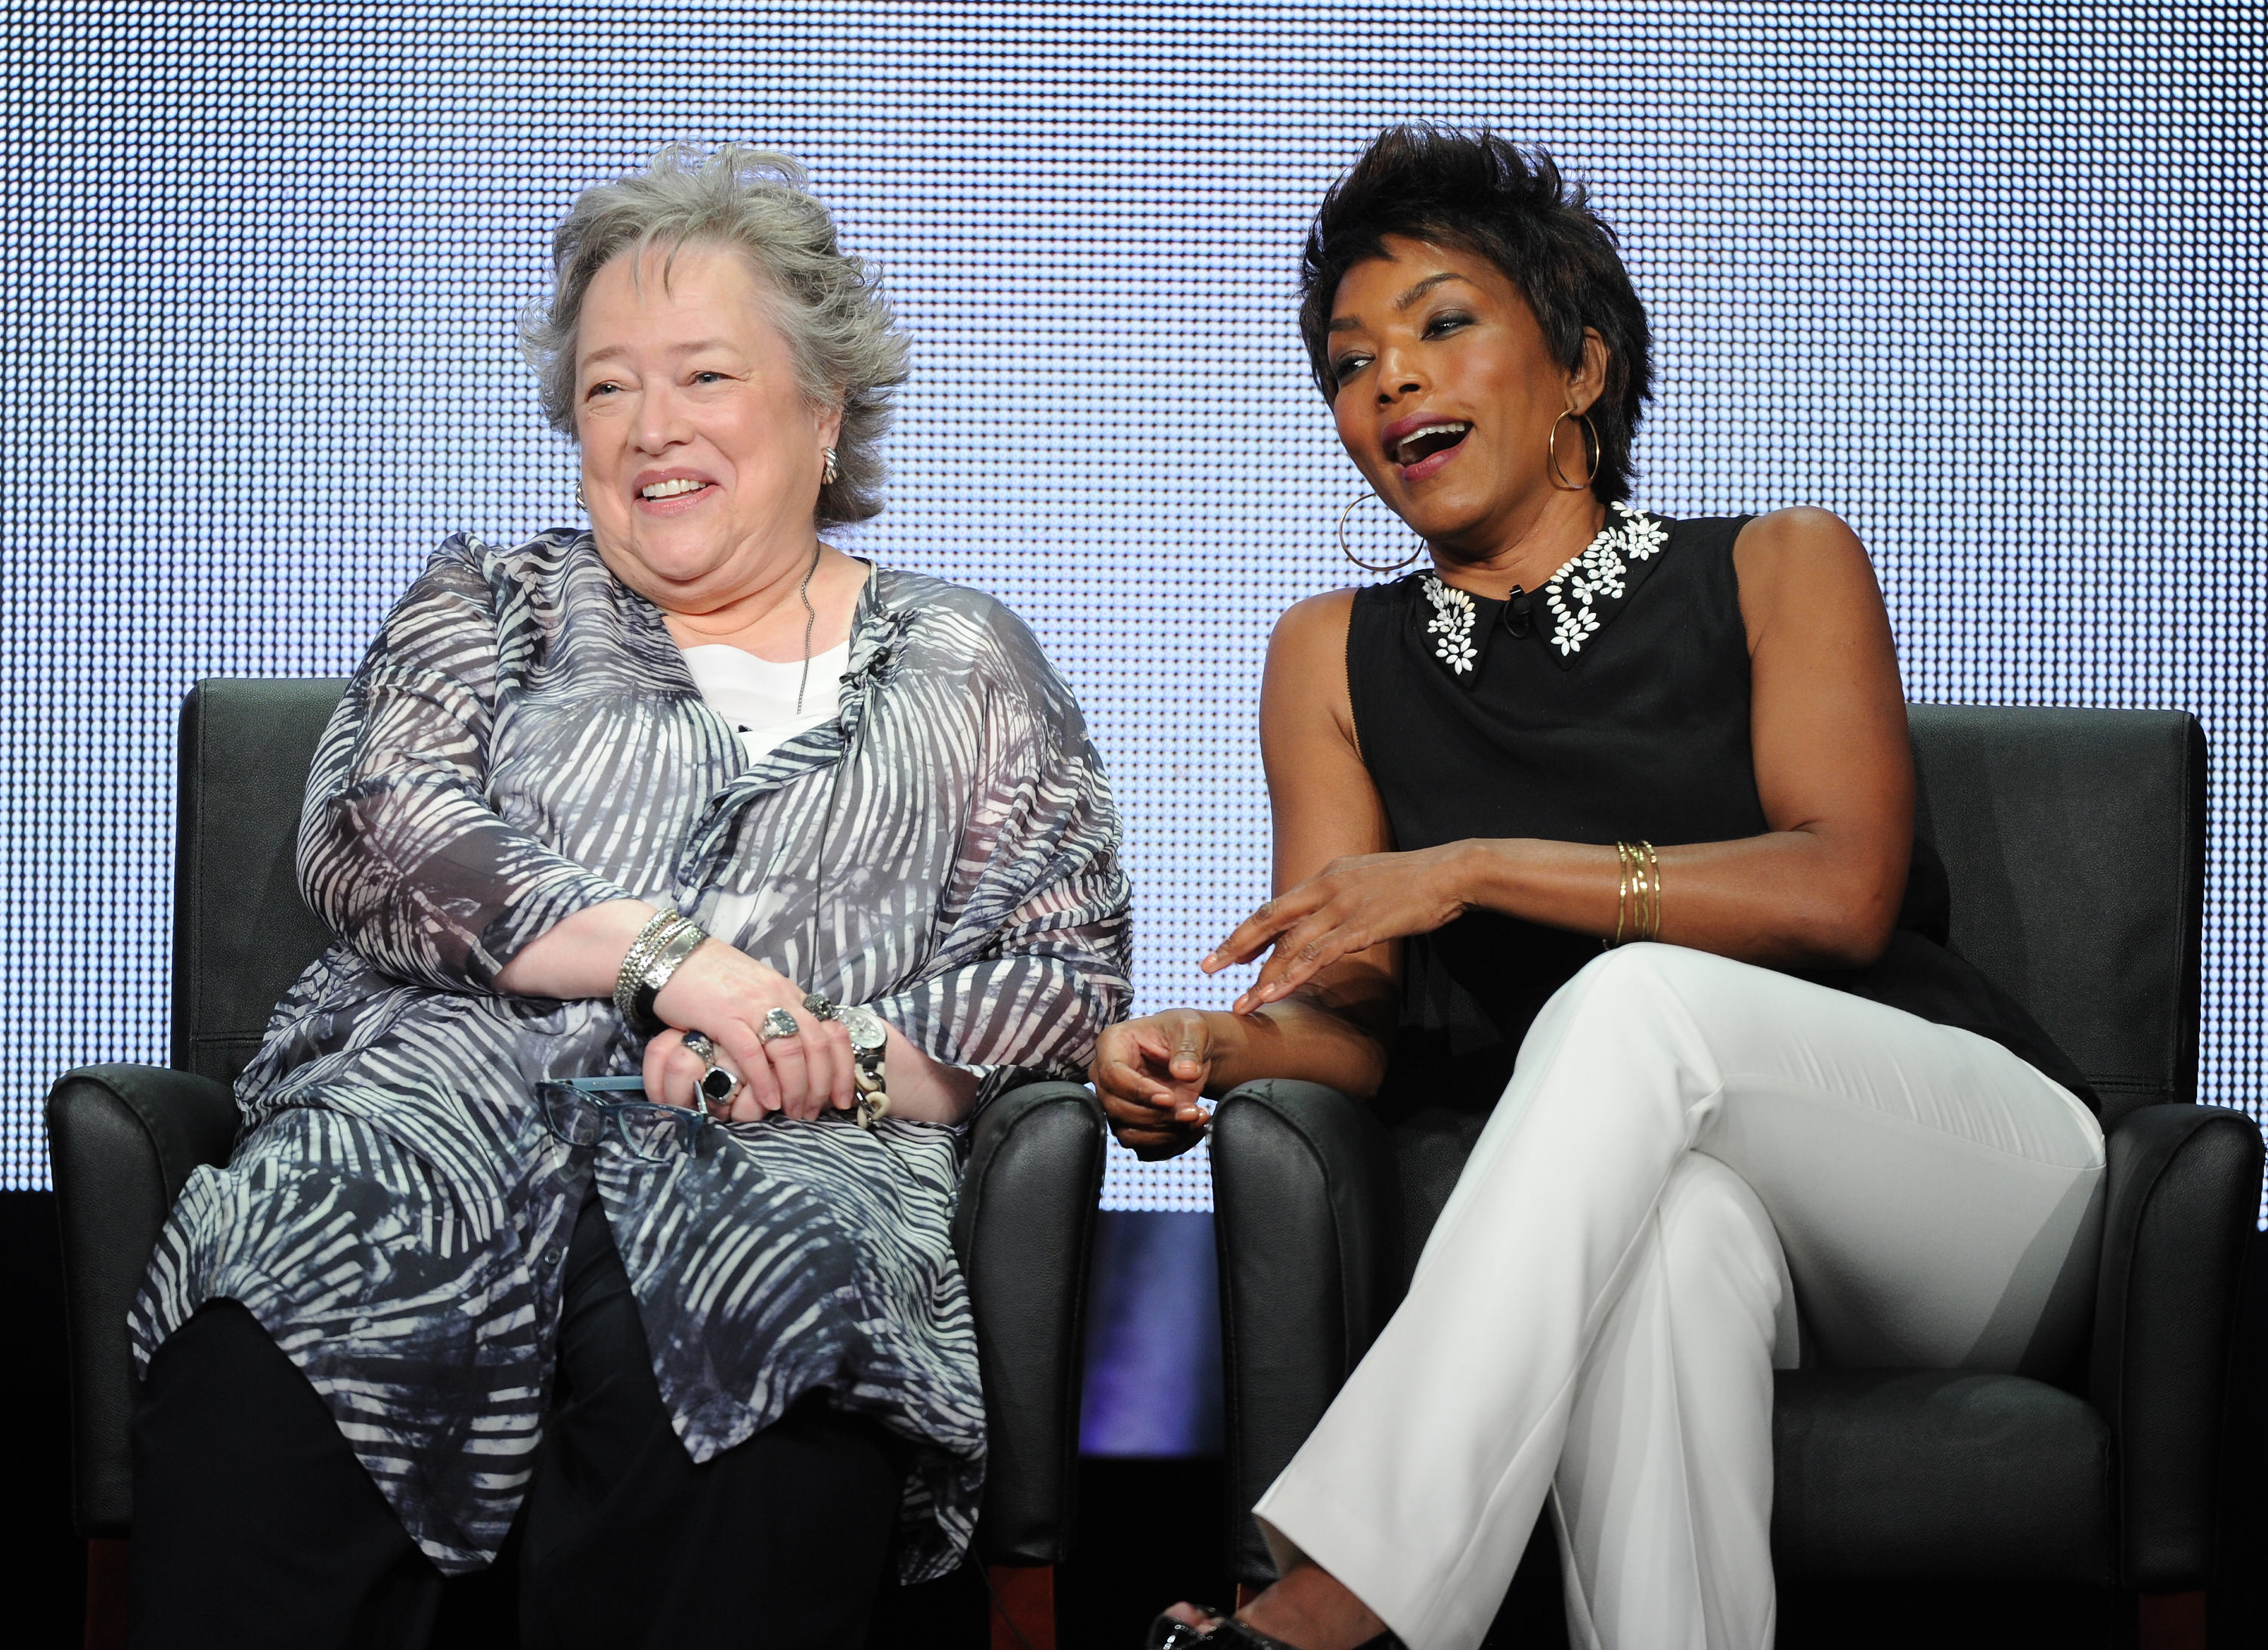 "From left, actors Kathy Bates and Angela Bassett participate in ""American Horror Story: Coven"" panel at the FX 2013 Summer TCA press tour at the Beverly Hilton Hotel on Friday, August 2, 2013 in Beverly Hills, Calif. (Photo by Frank Micelotta/Invision for FX/AP Images)"